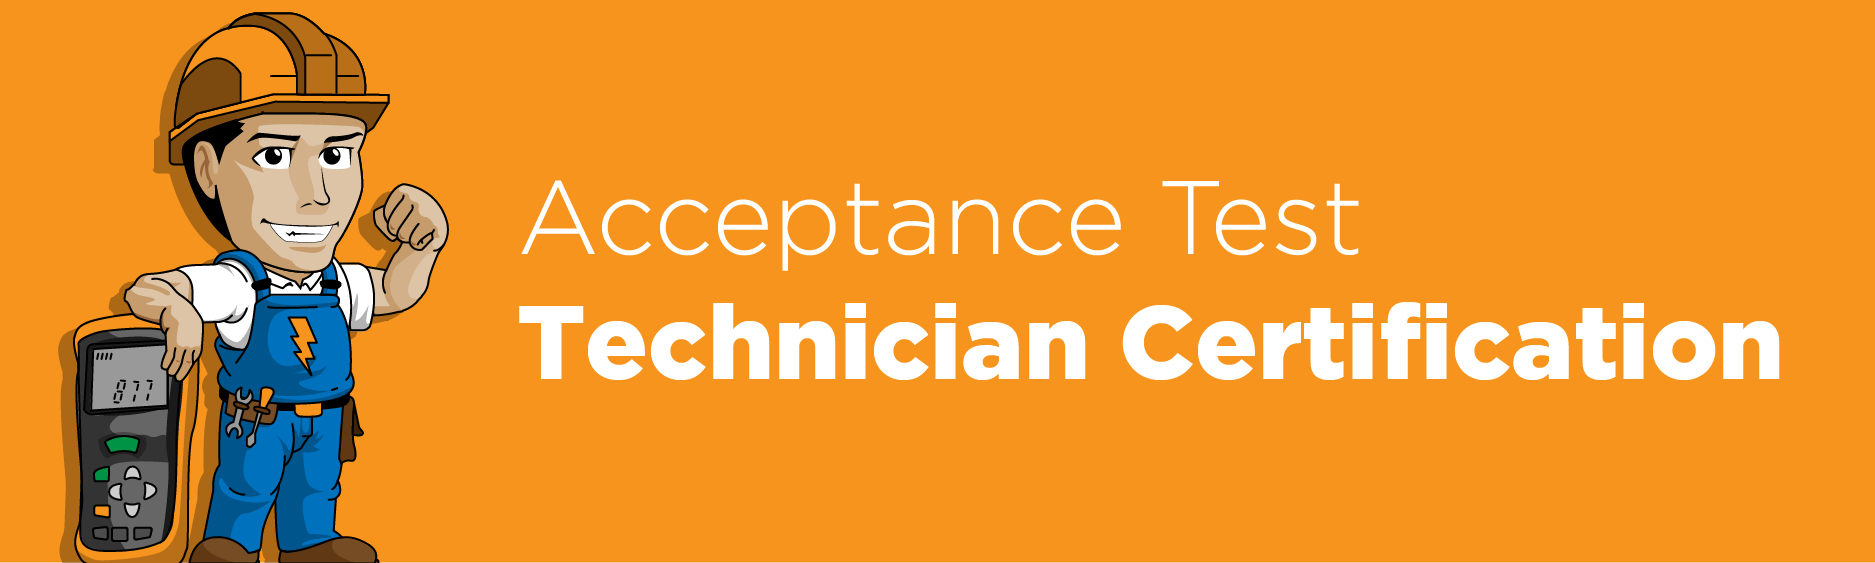 Acceptance Test Technician Application